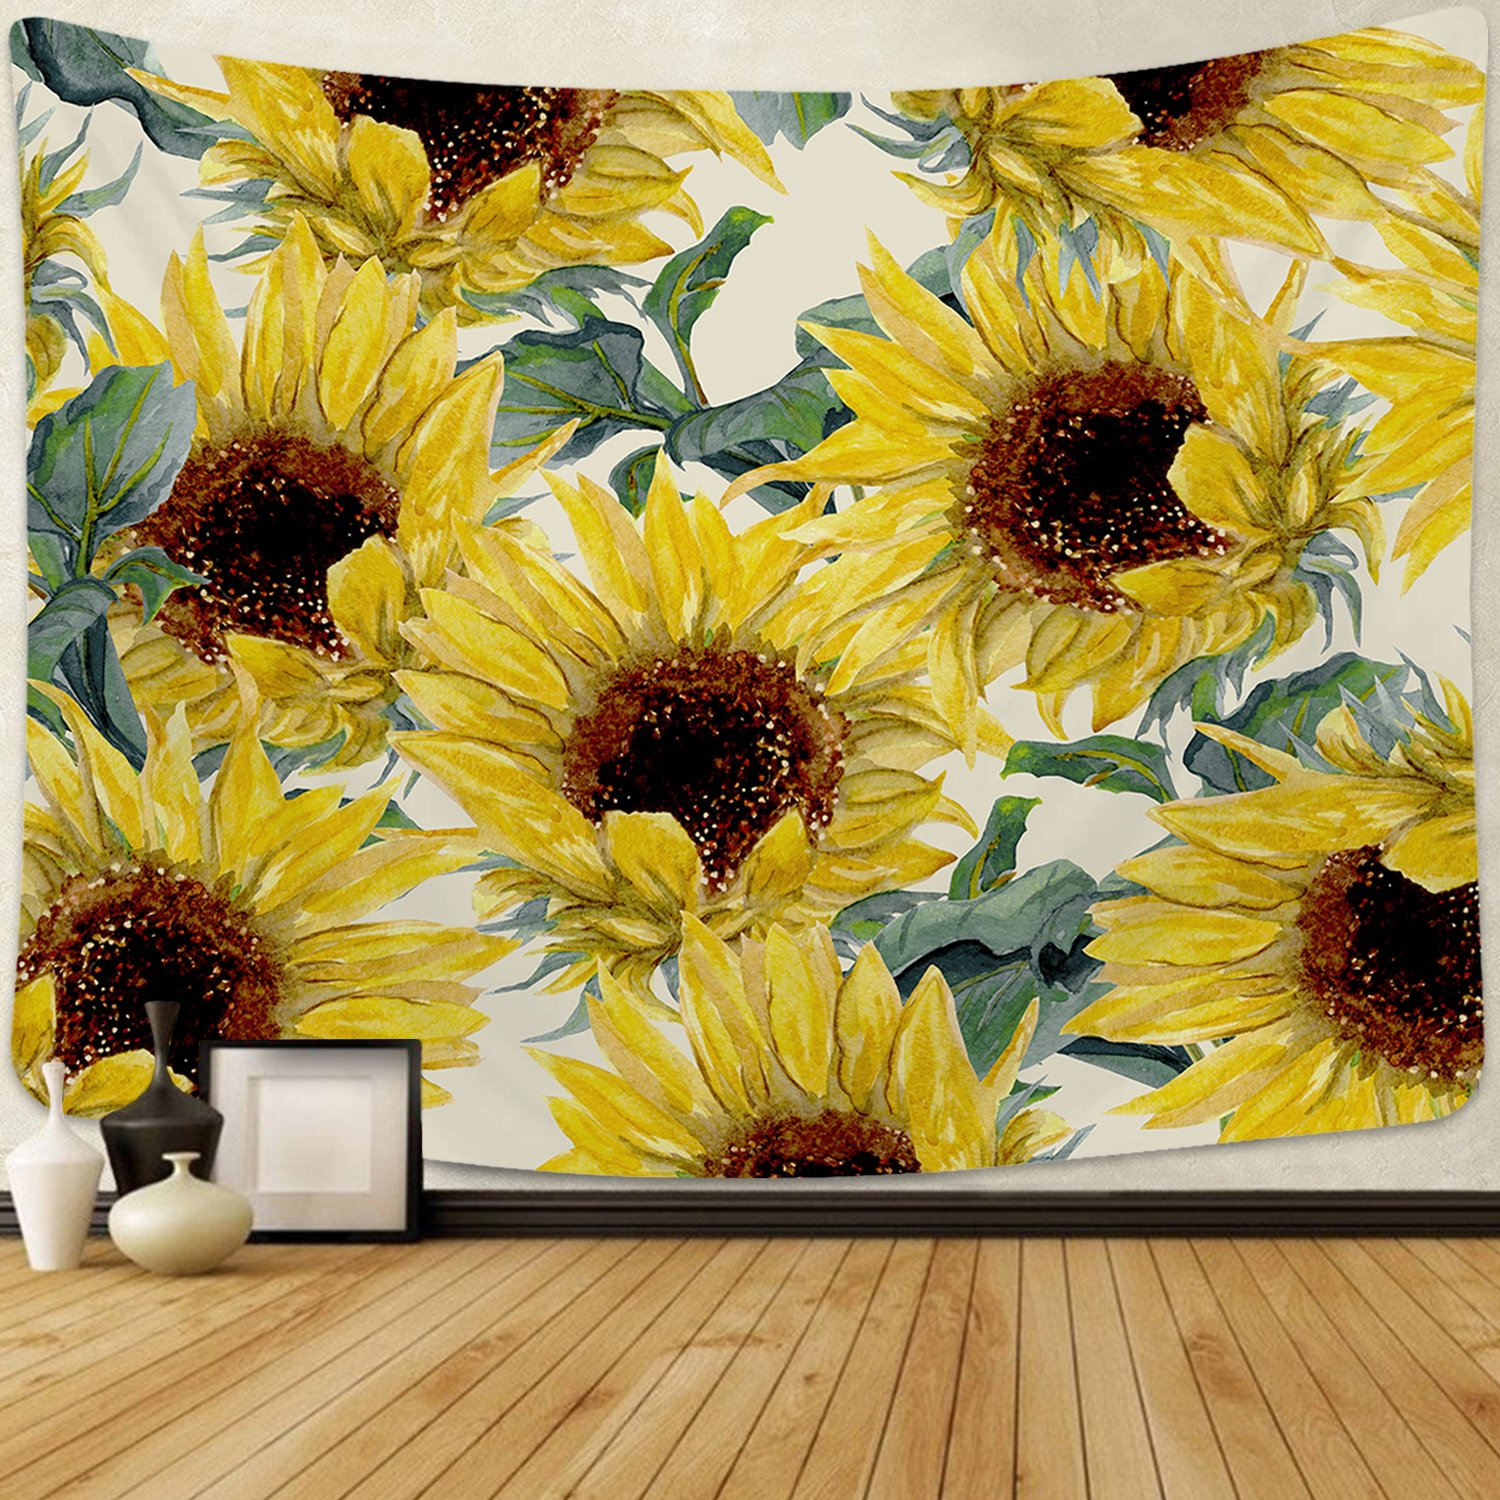 Smurfs Yingda Sunflowers Tapestry Wall Hanging Sunflower Plant Printed Tapestry Sunflower Watercolor Tapestry Cactus Wall Tapestry for Kids Girls Boys Room Bedroom Living Room Dorm by Smurfs Yingda